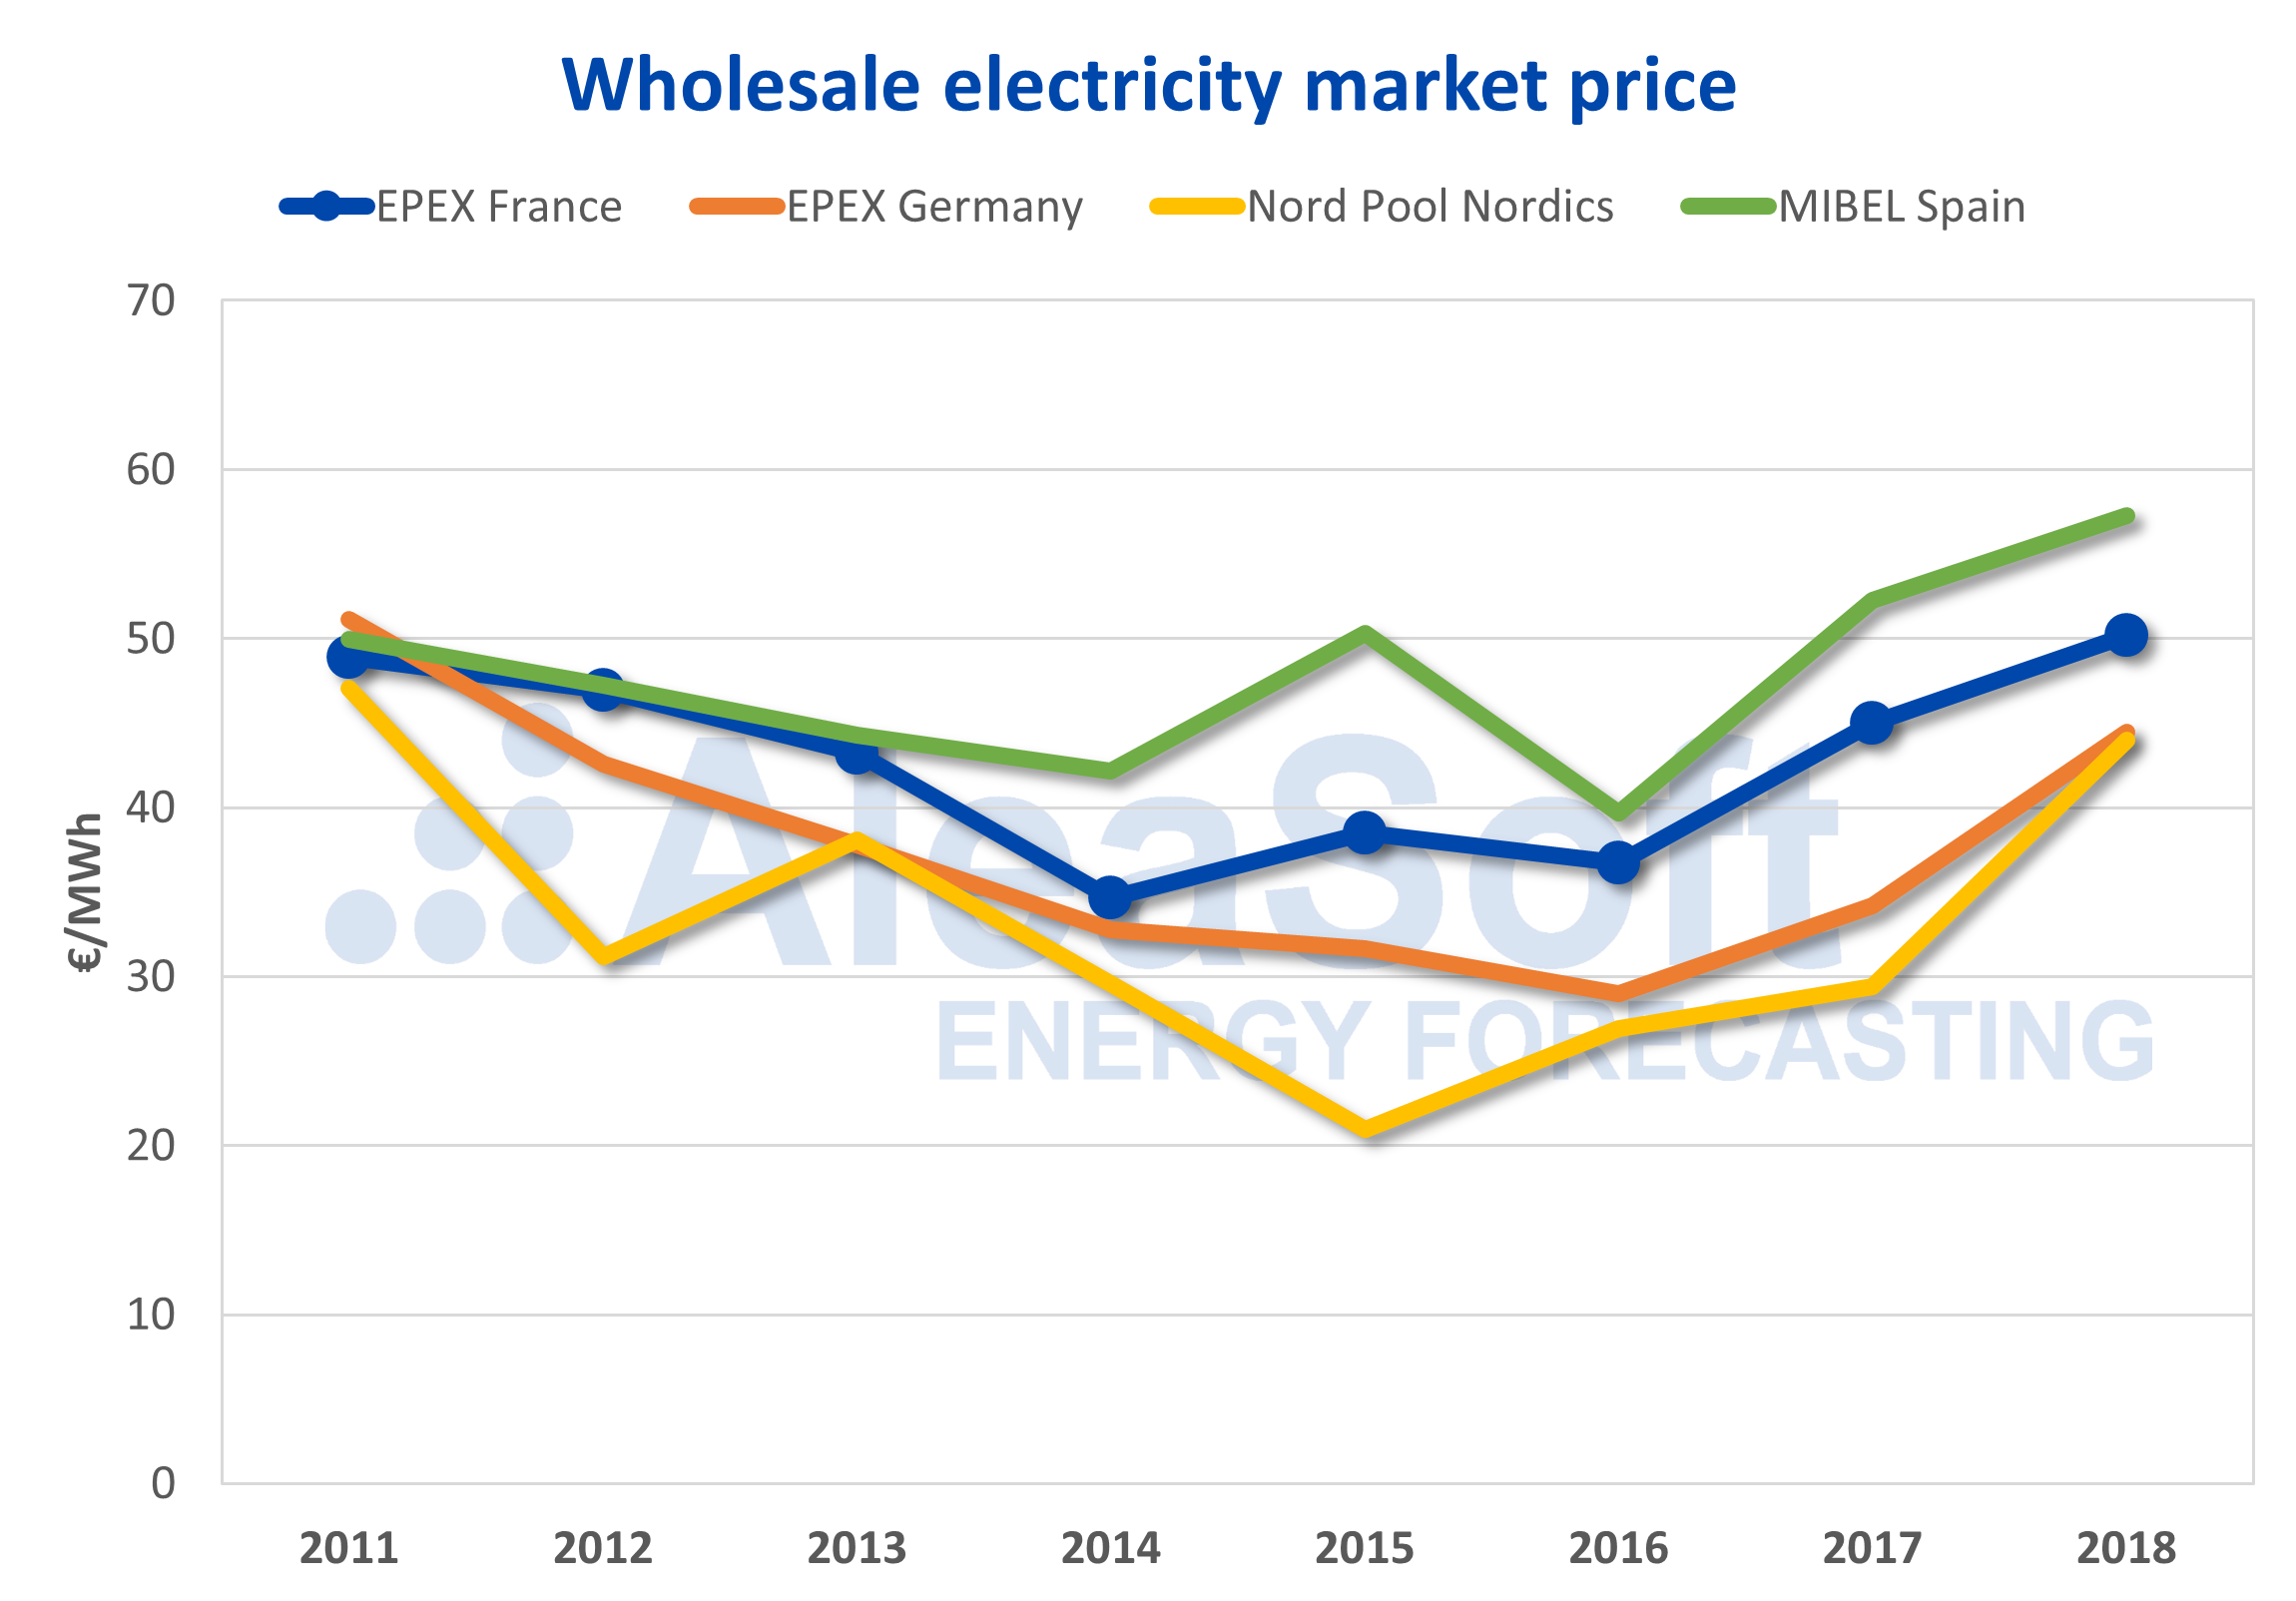 AleaSoft - Electricity market prices Europe